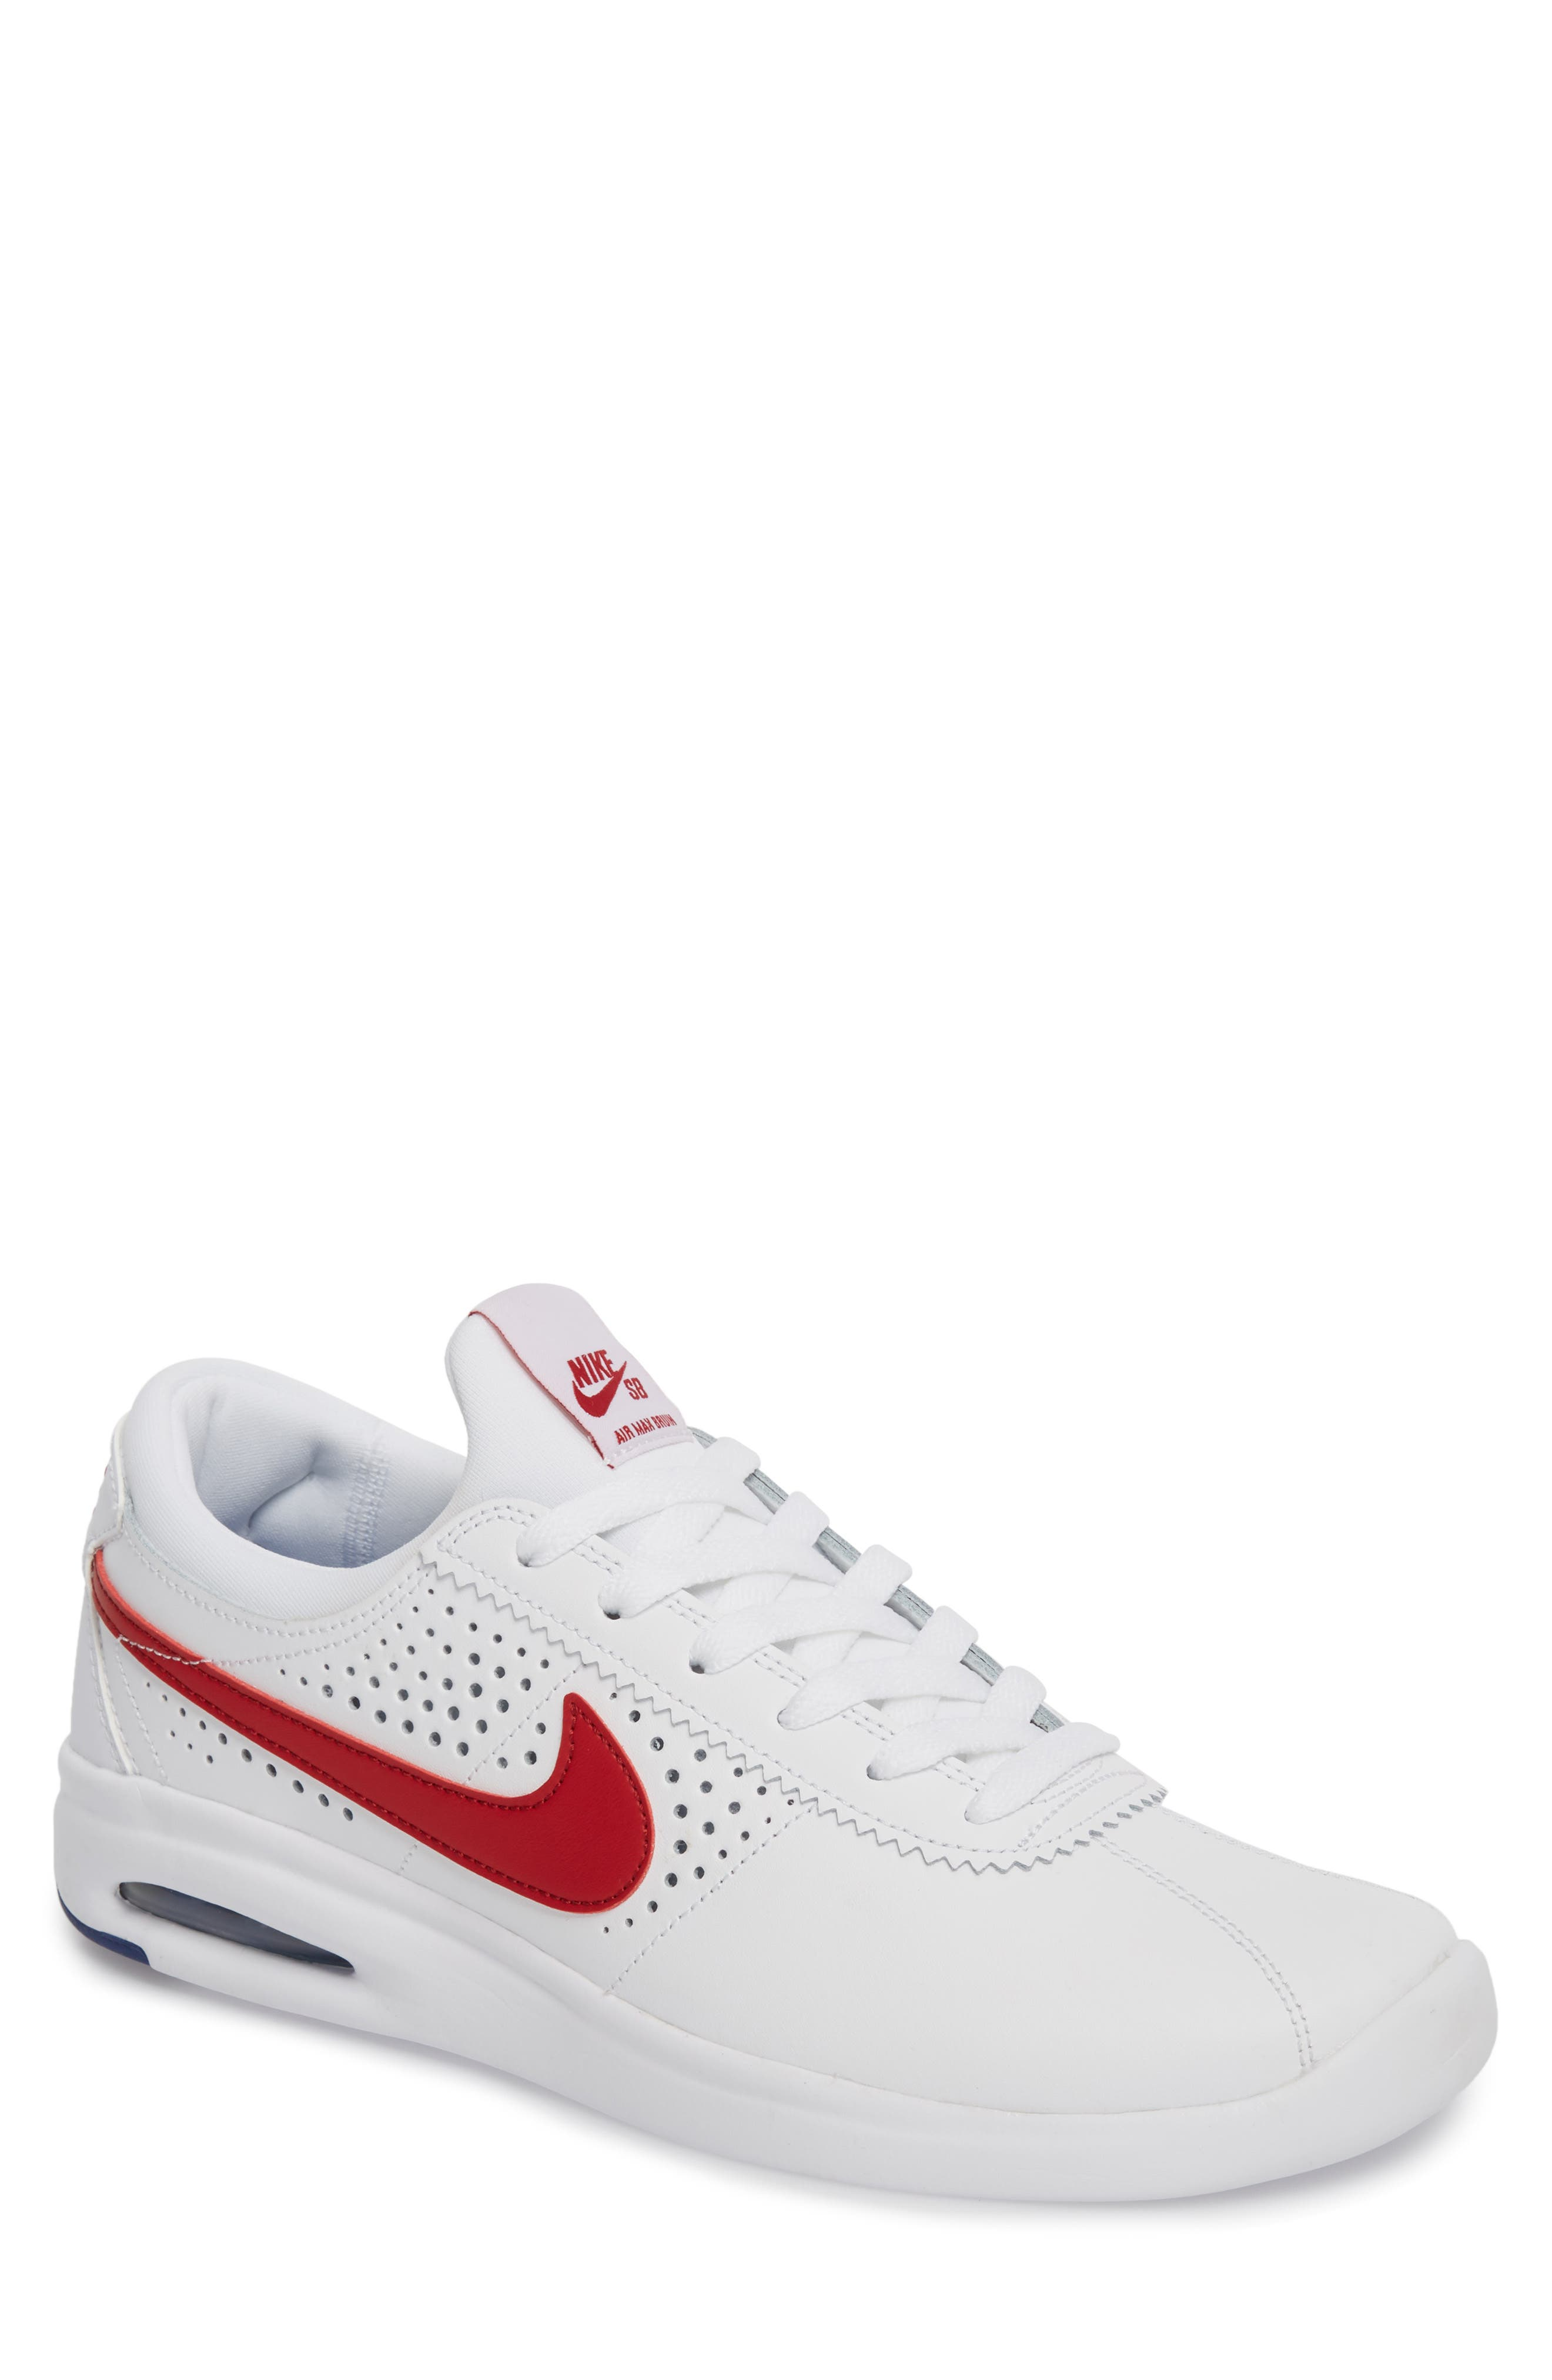 SB Air Max Bruin Vapor Skateboarding Sneaker,                         Main,                         color, 100